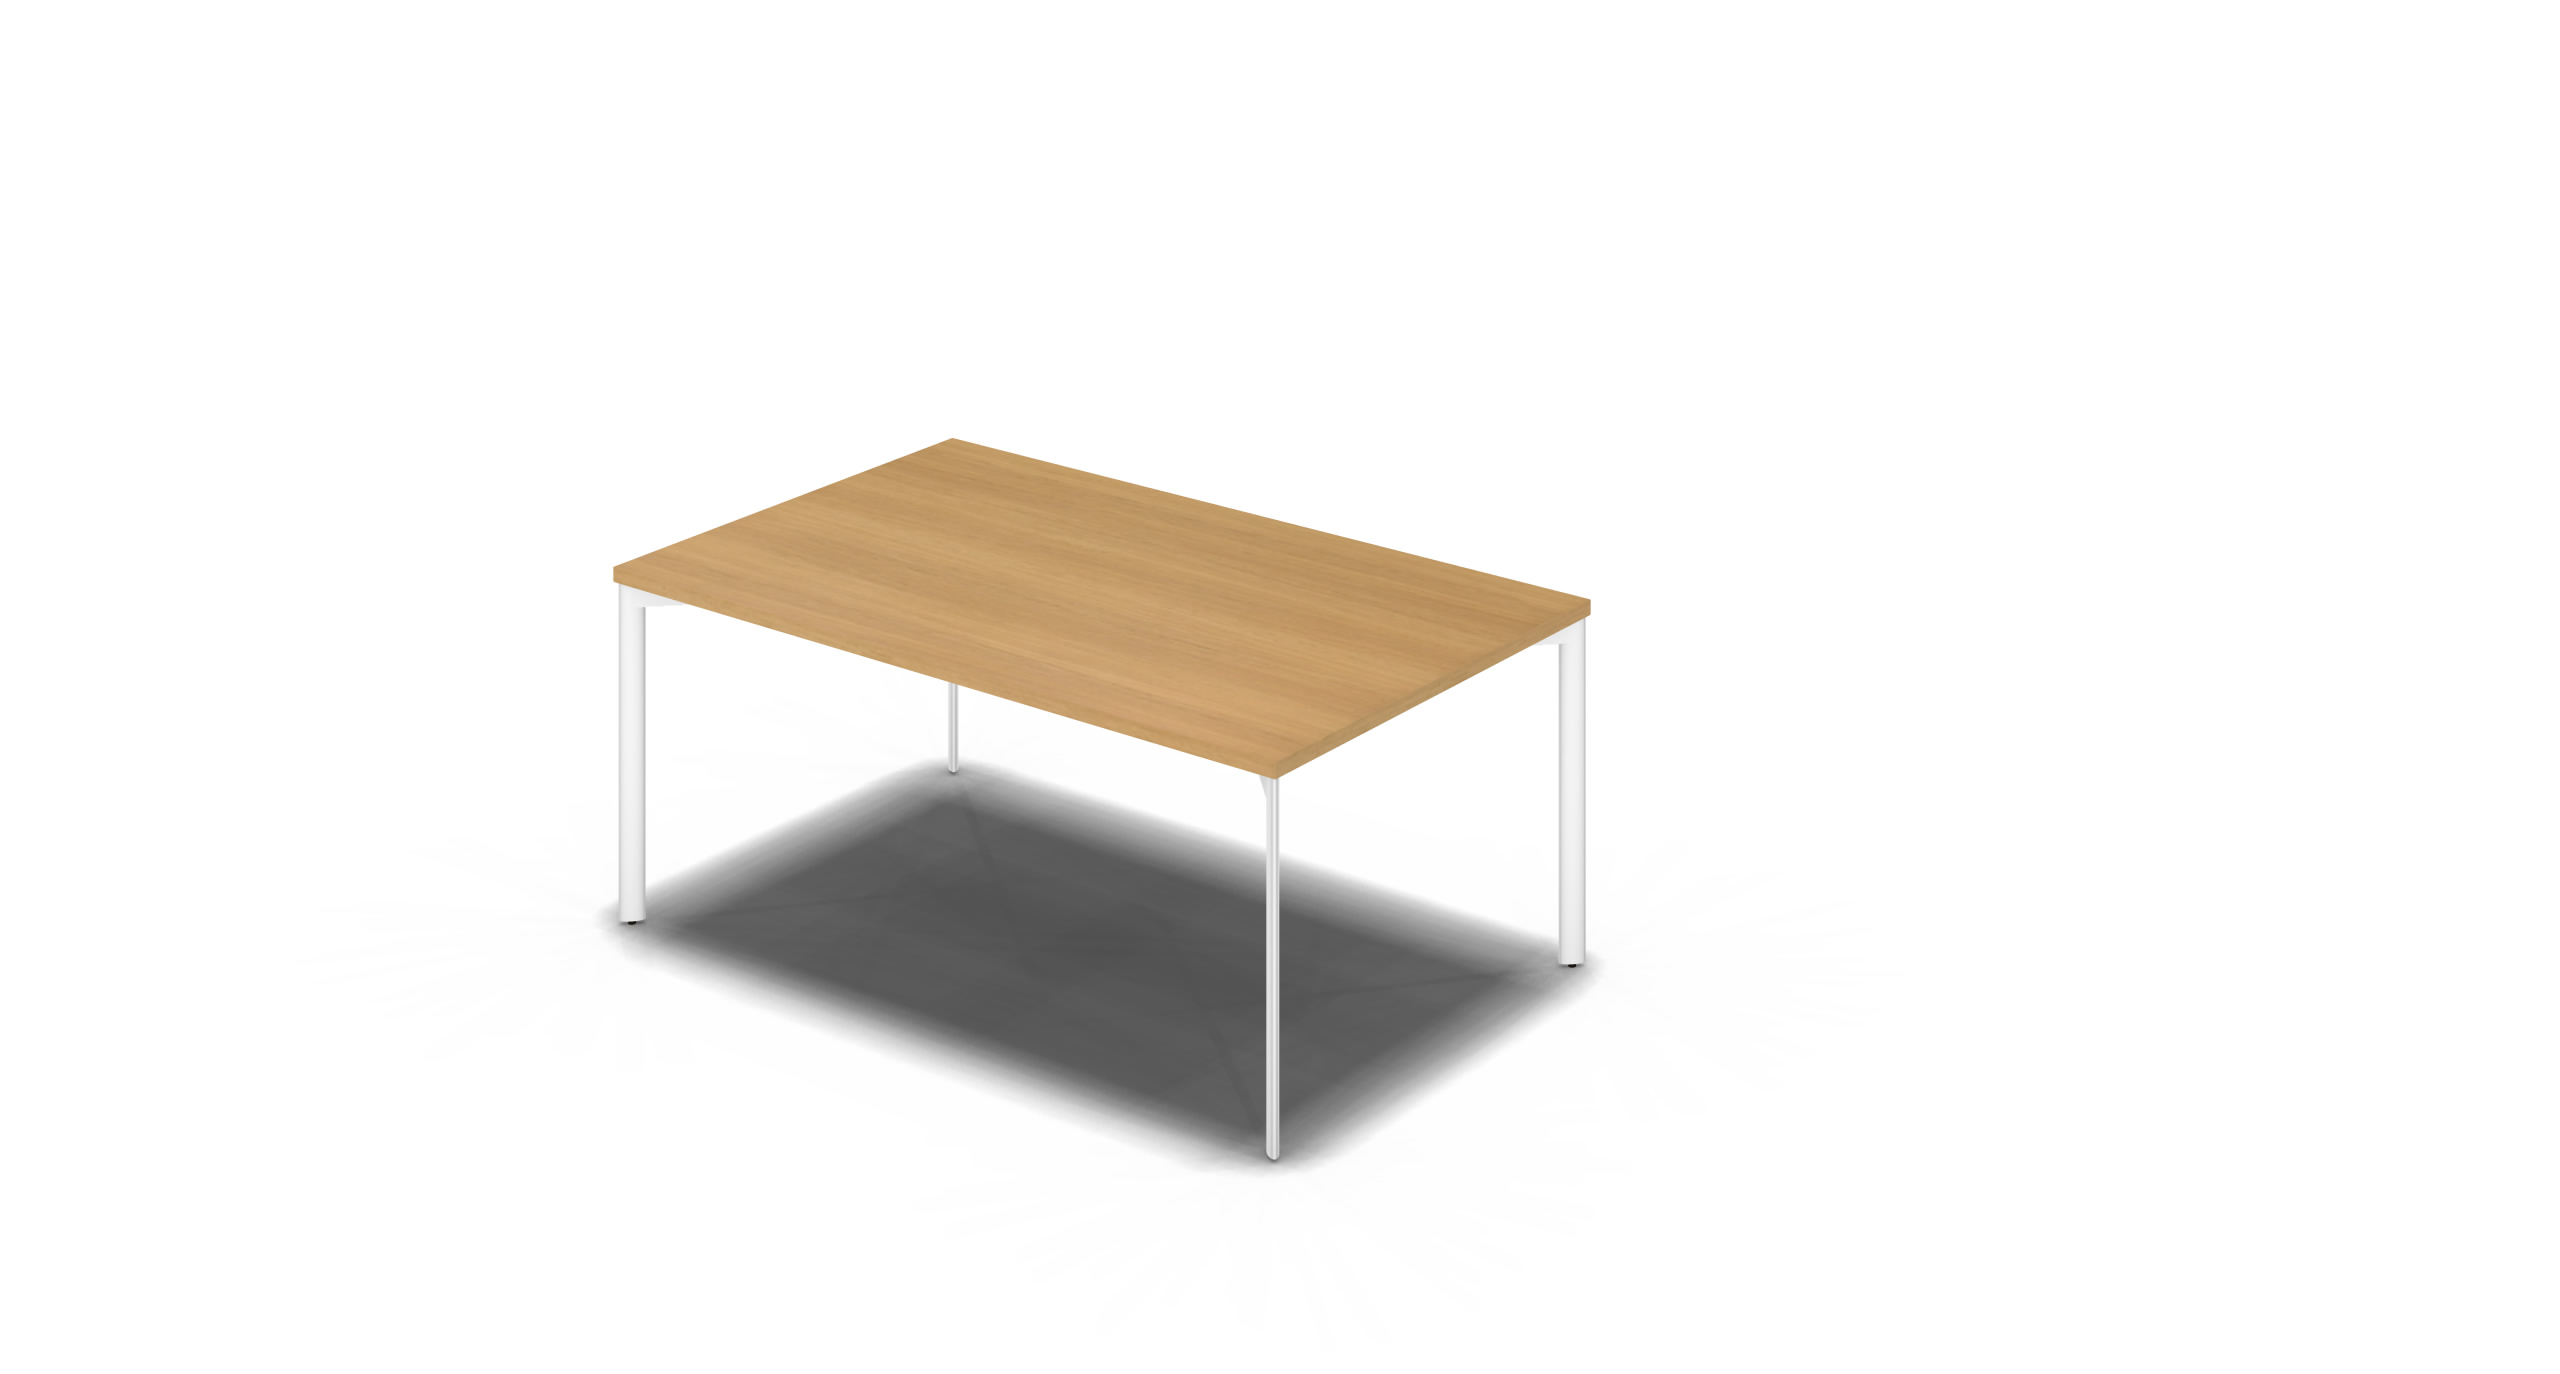 Table_Slim_1500x900_White_Oak_noOption